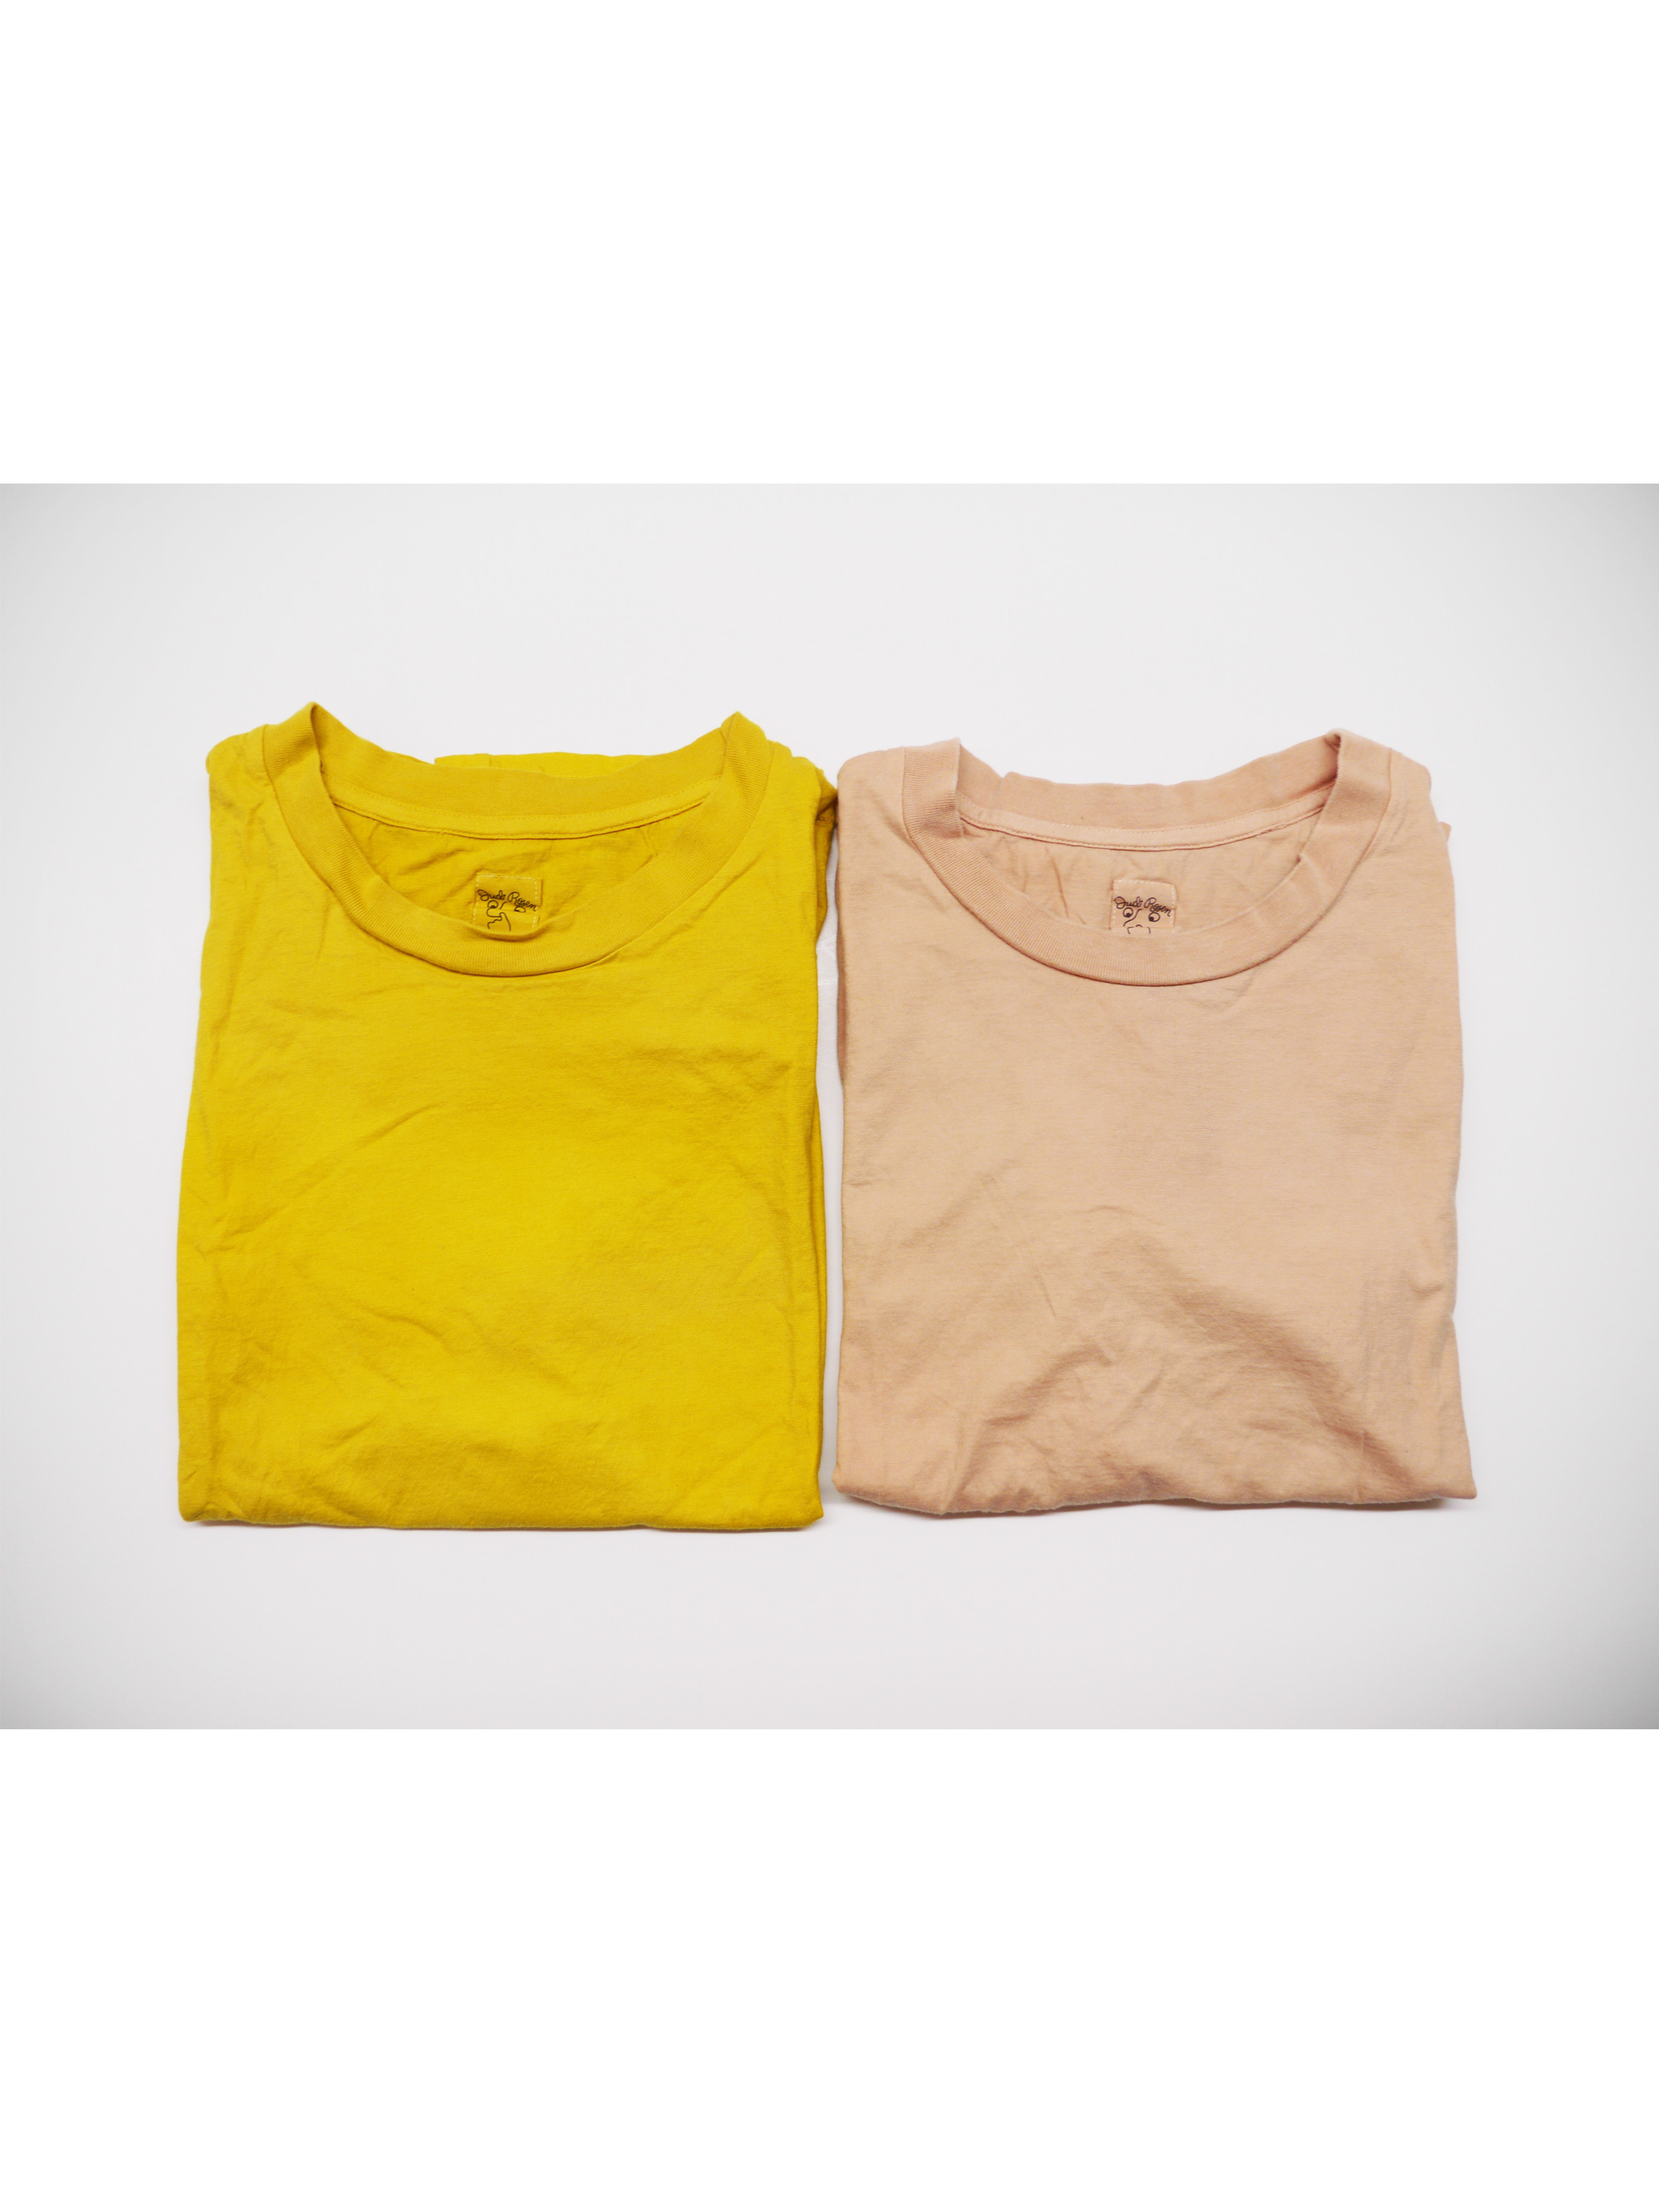 [Judi Rosen]Orange Dye T-shirts